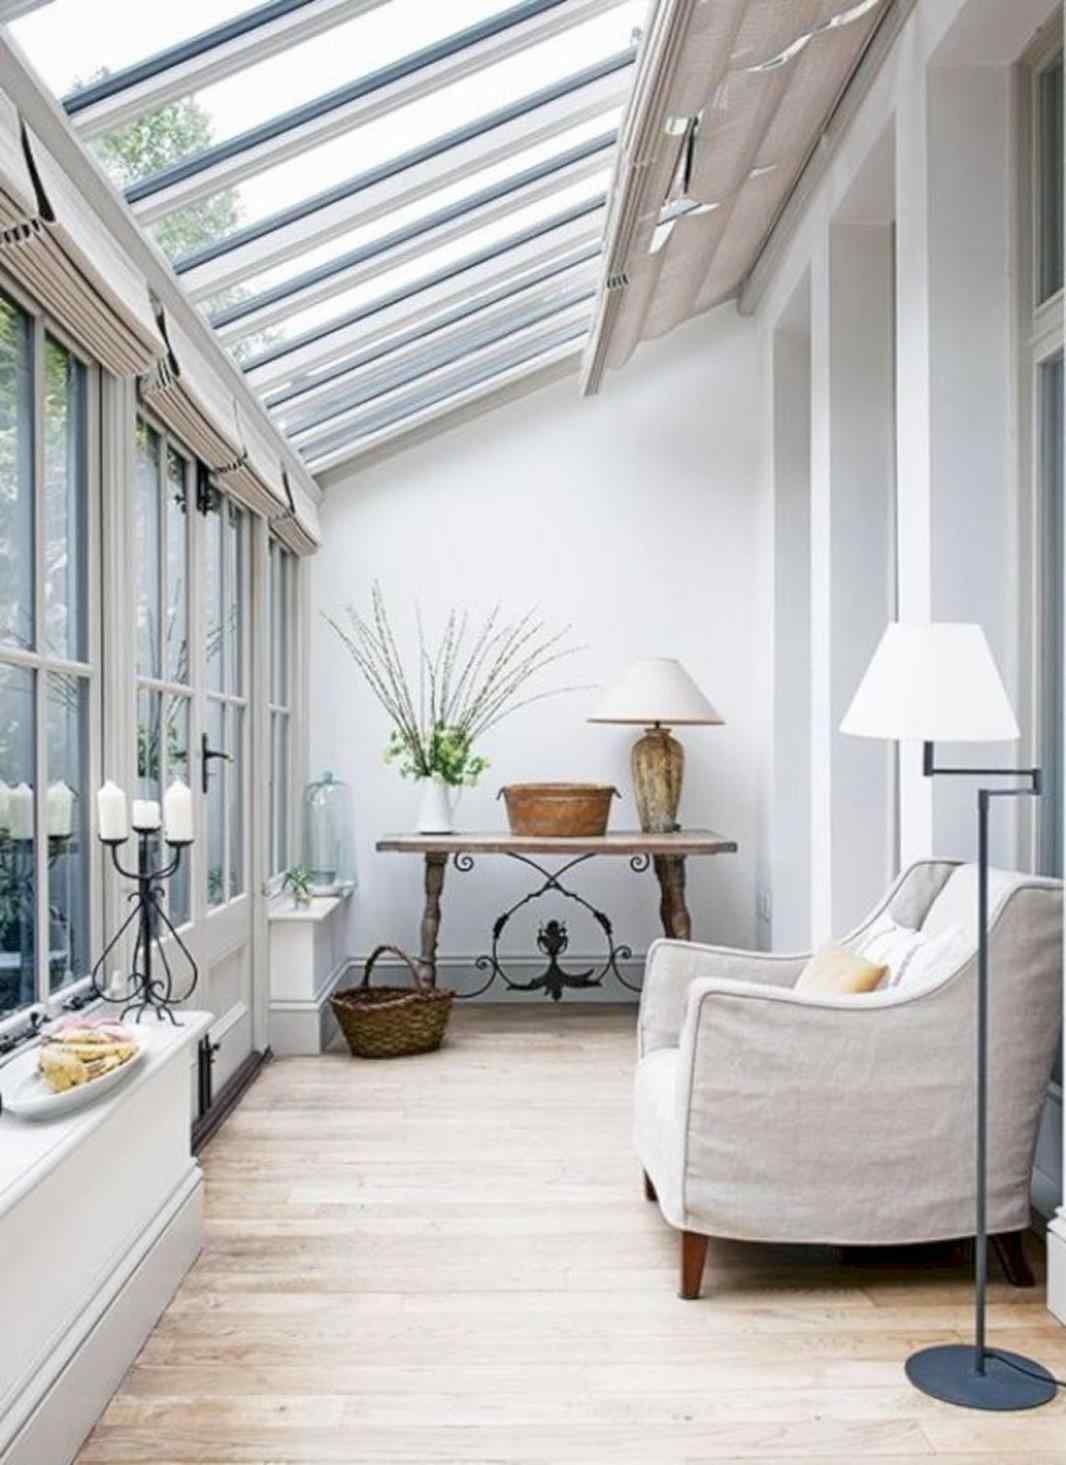 24 Fabulous Small Conservatory Ideas For Amazing Interior